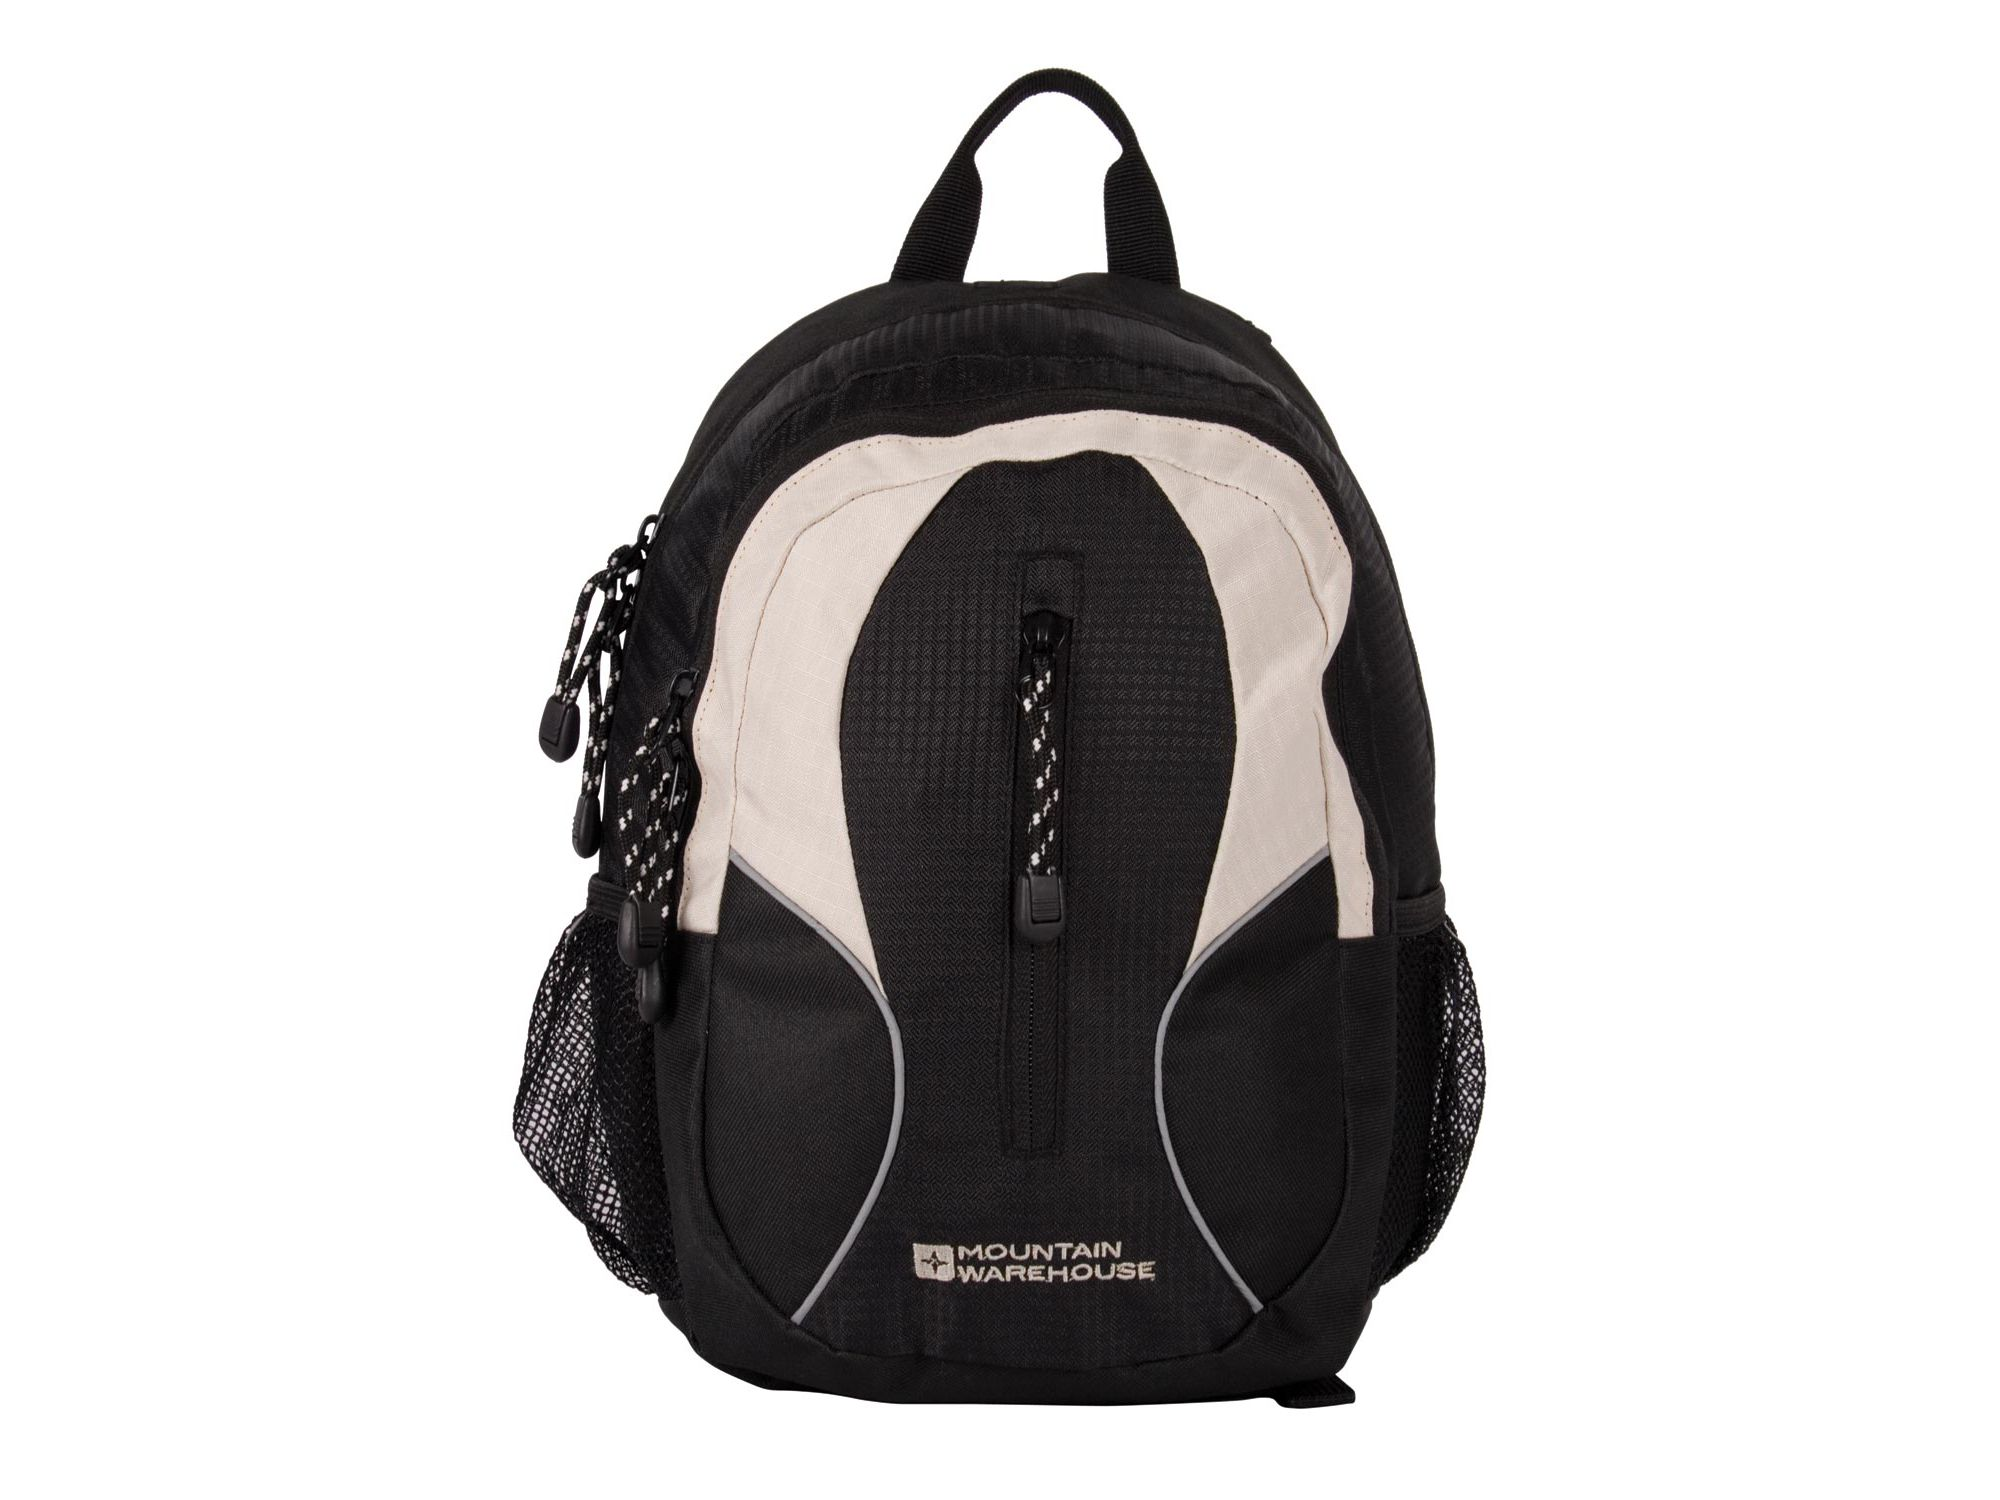 Merlin 12 Backpack